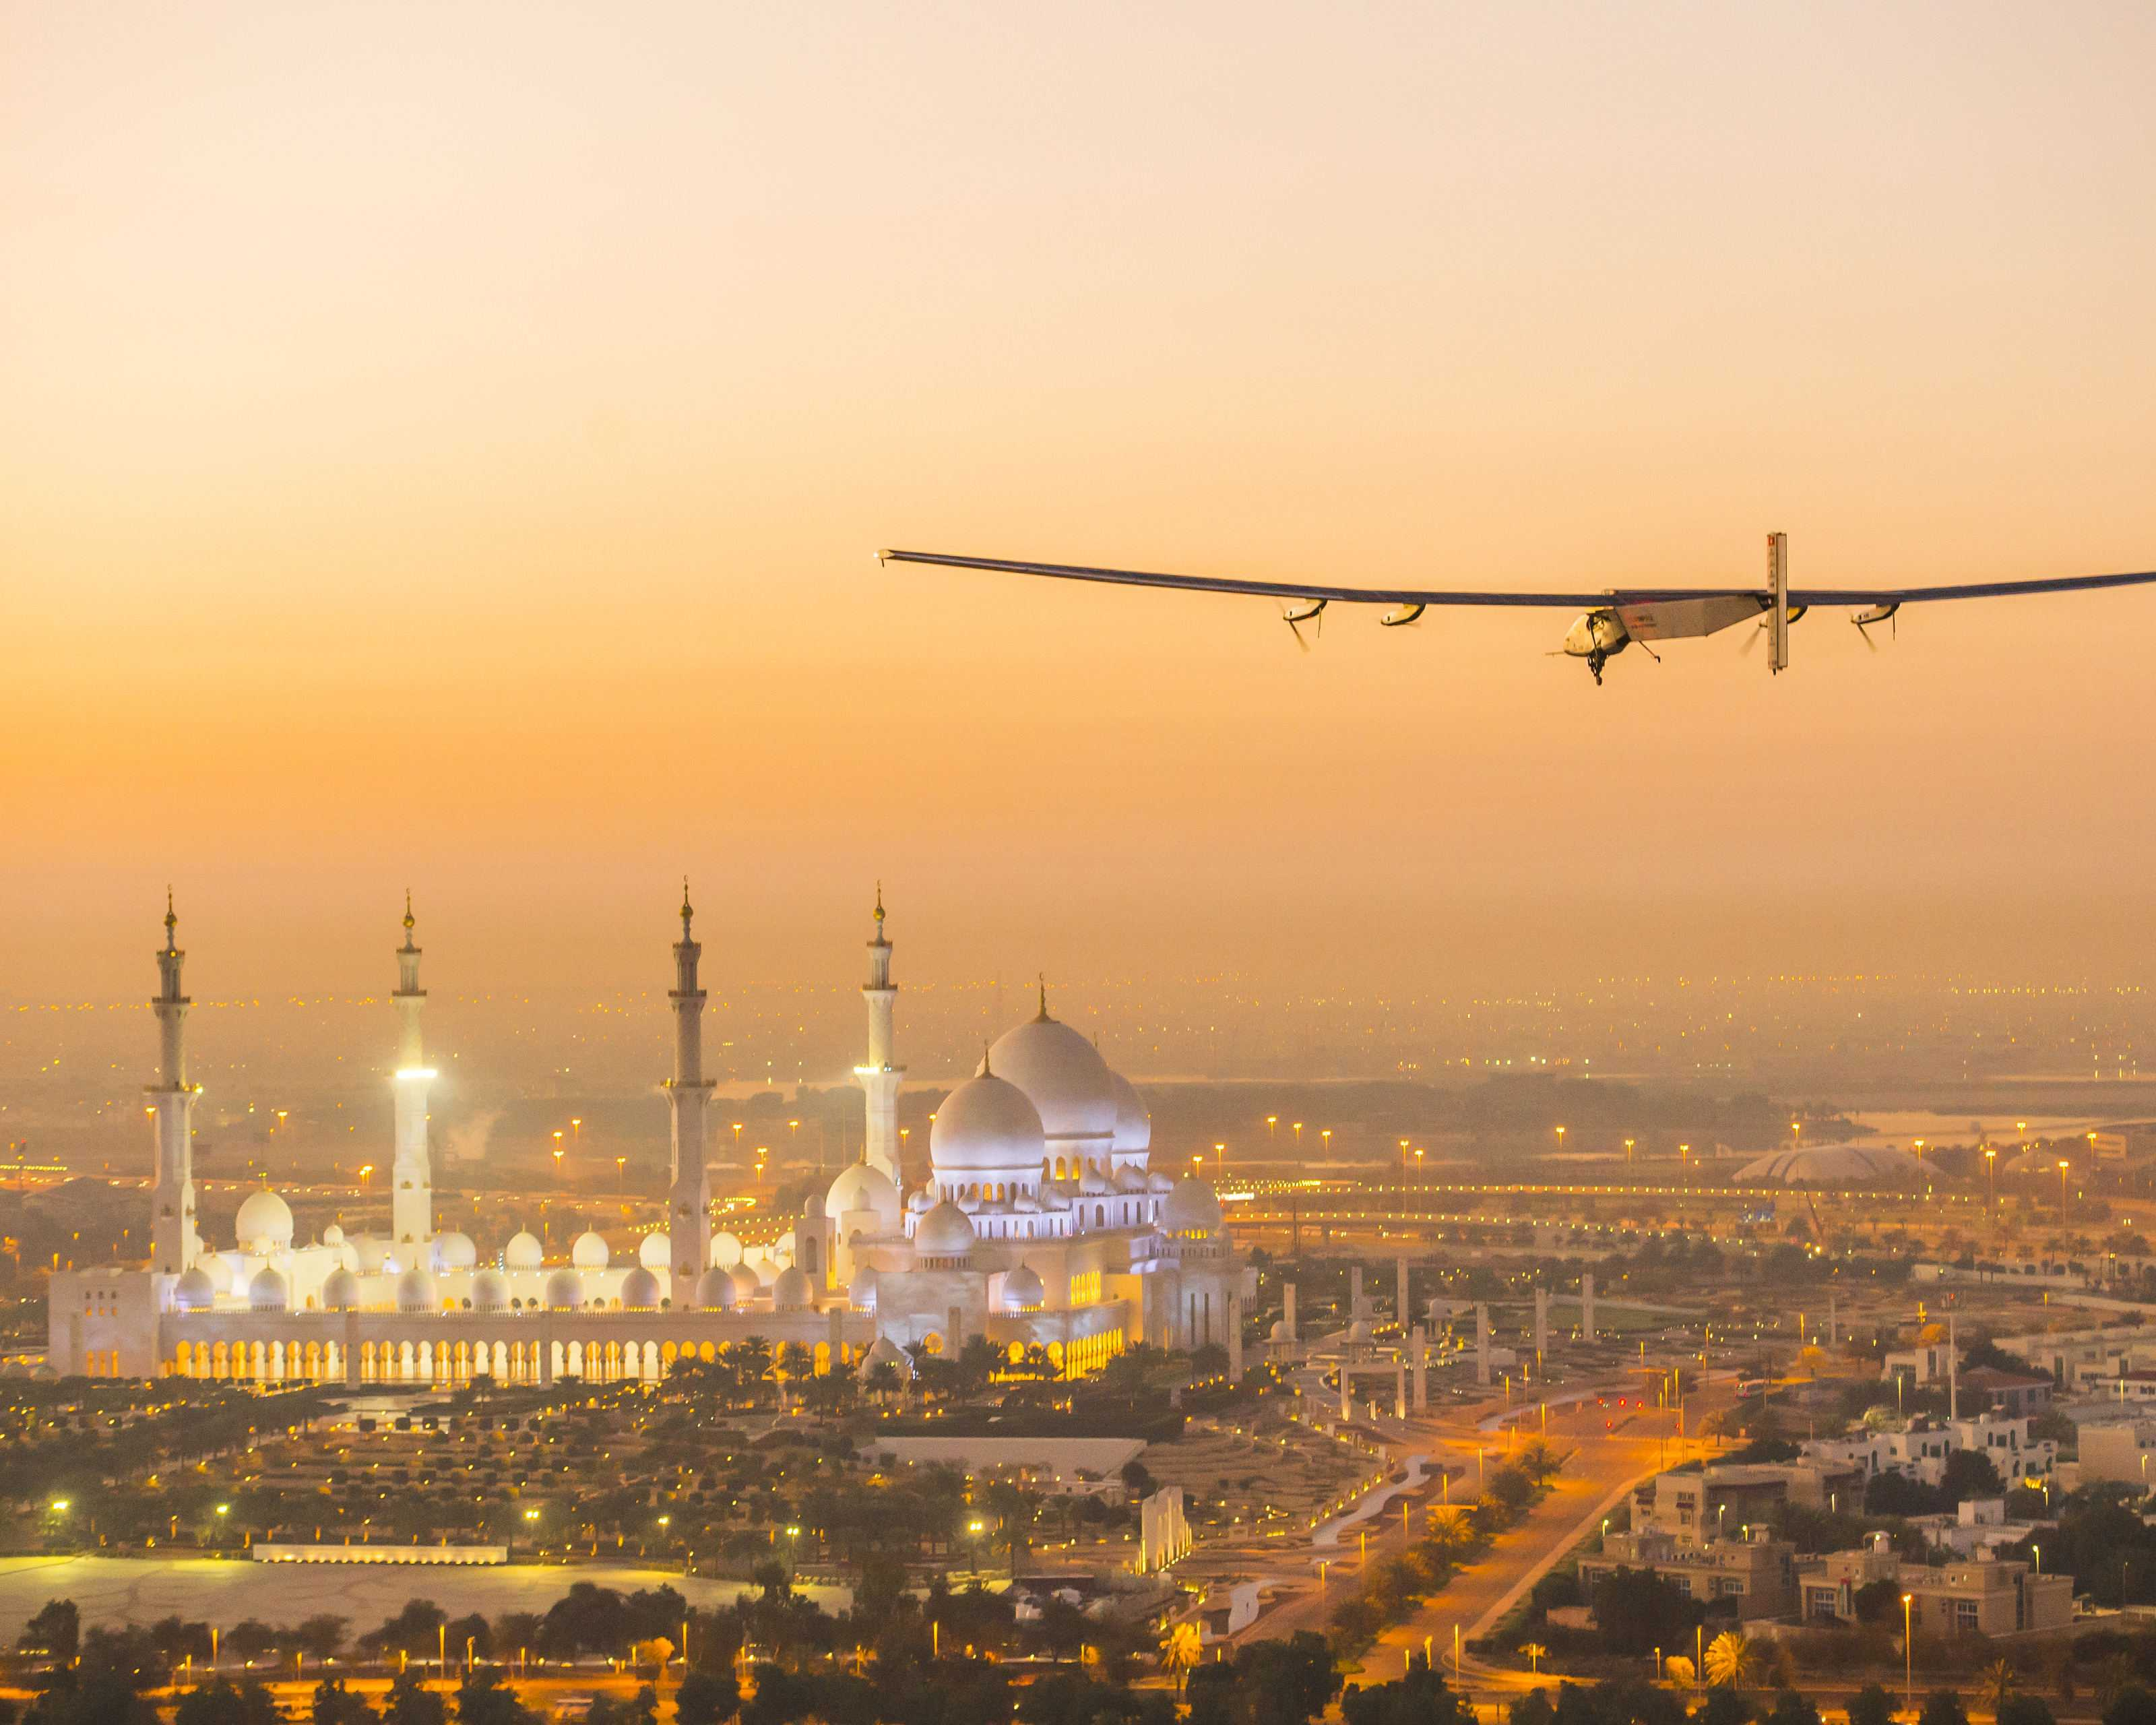 Solar Impulse_HB-SIB_Test_Flight_AbuDhabi | © Jean Revillard